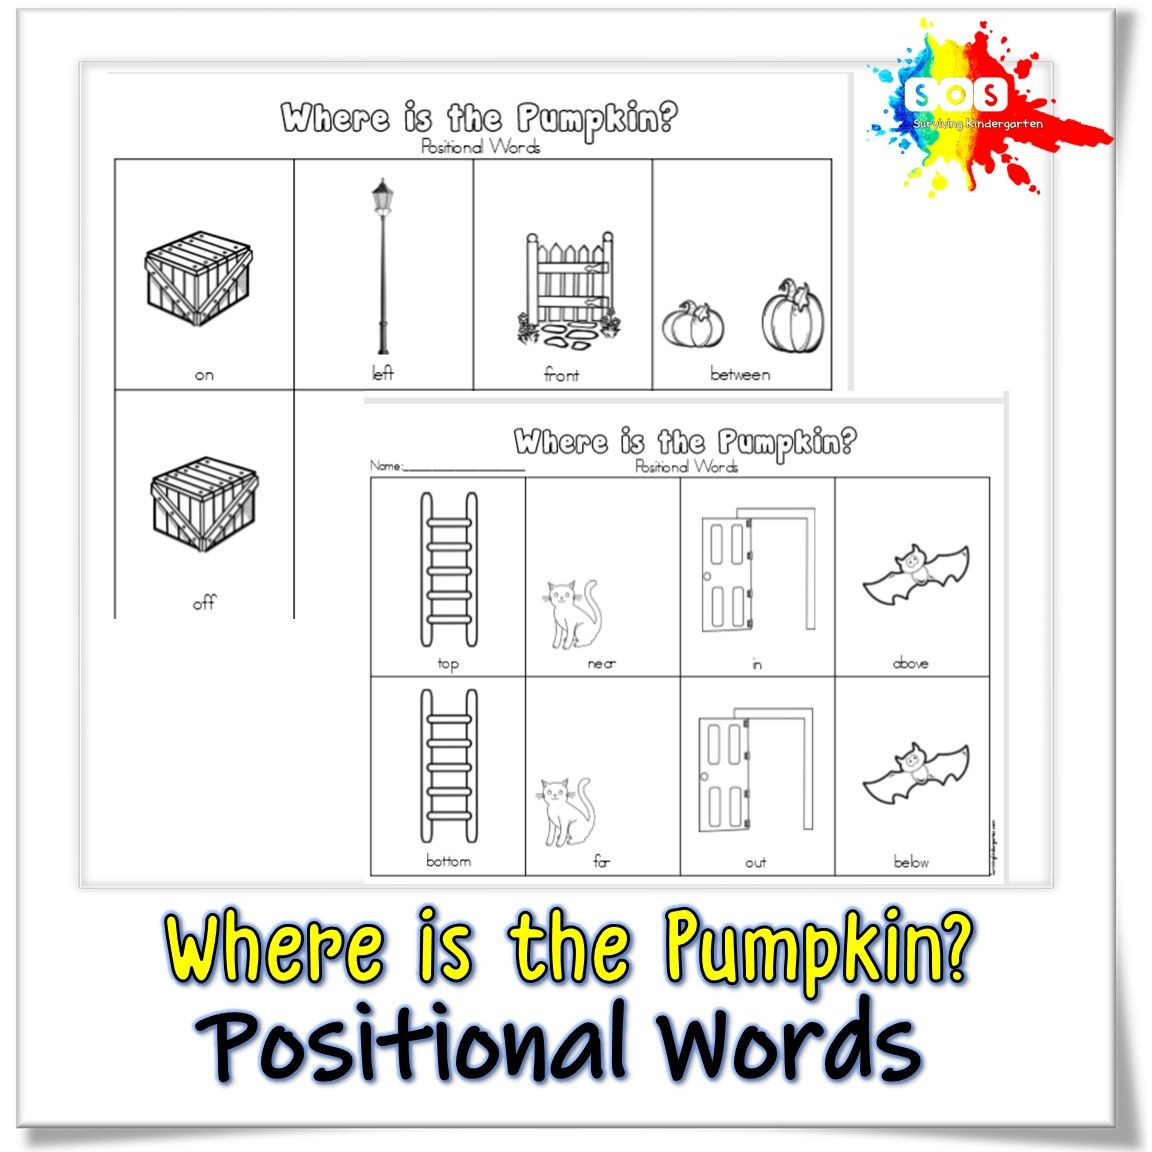 Positional Words Where Is The Butterfly Fish Pumpkin